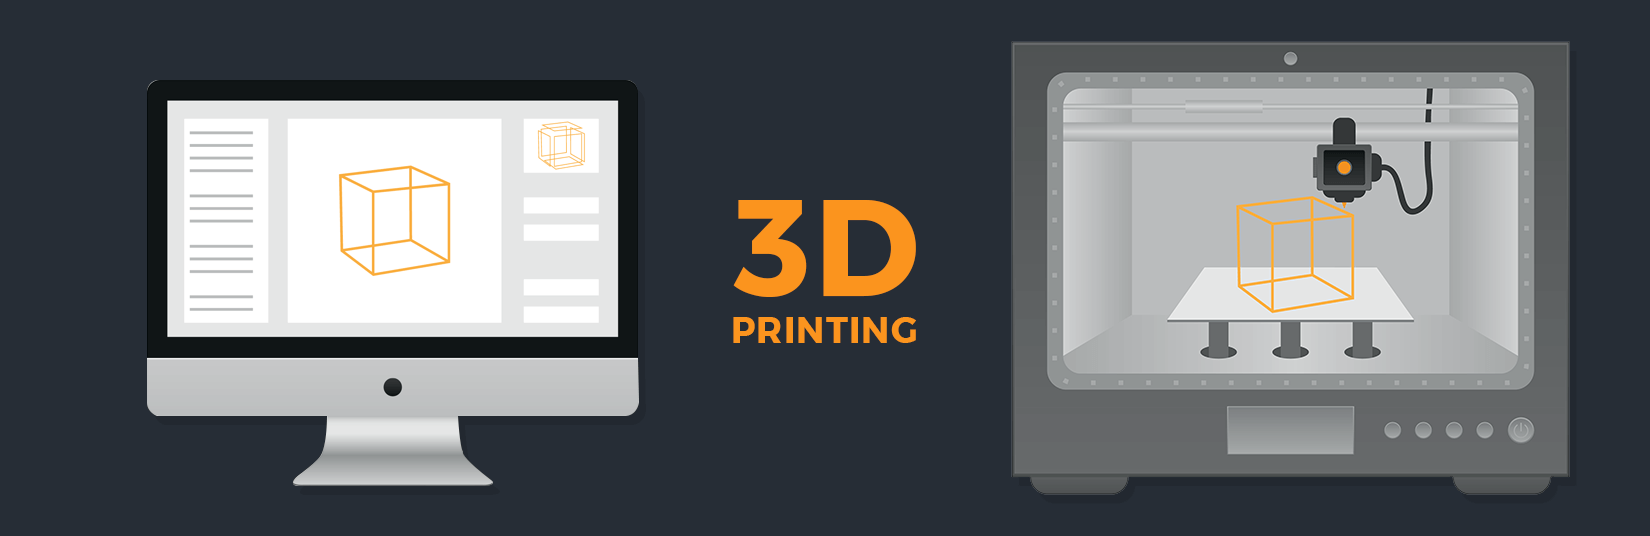 Custom App for 3D Printing Technology – Eyes On The Future World